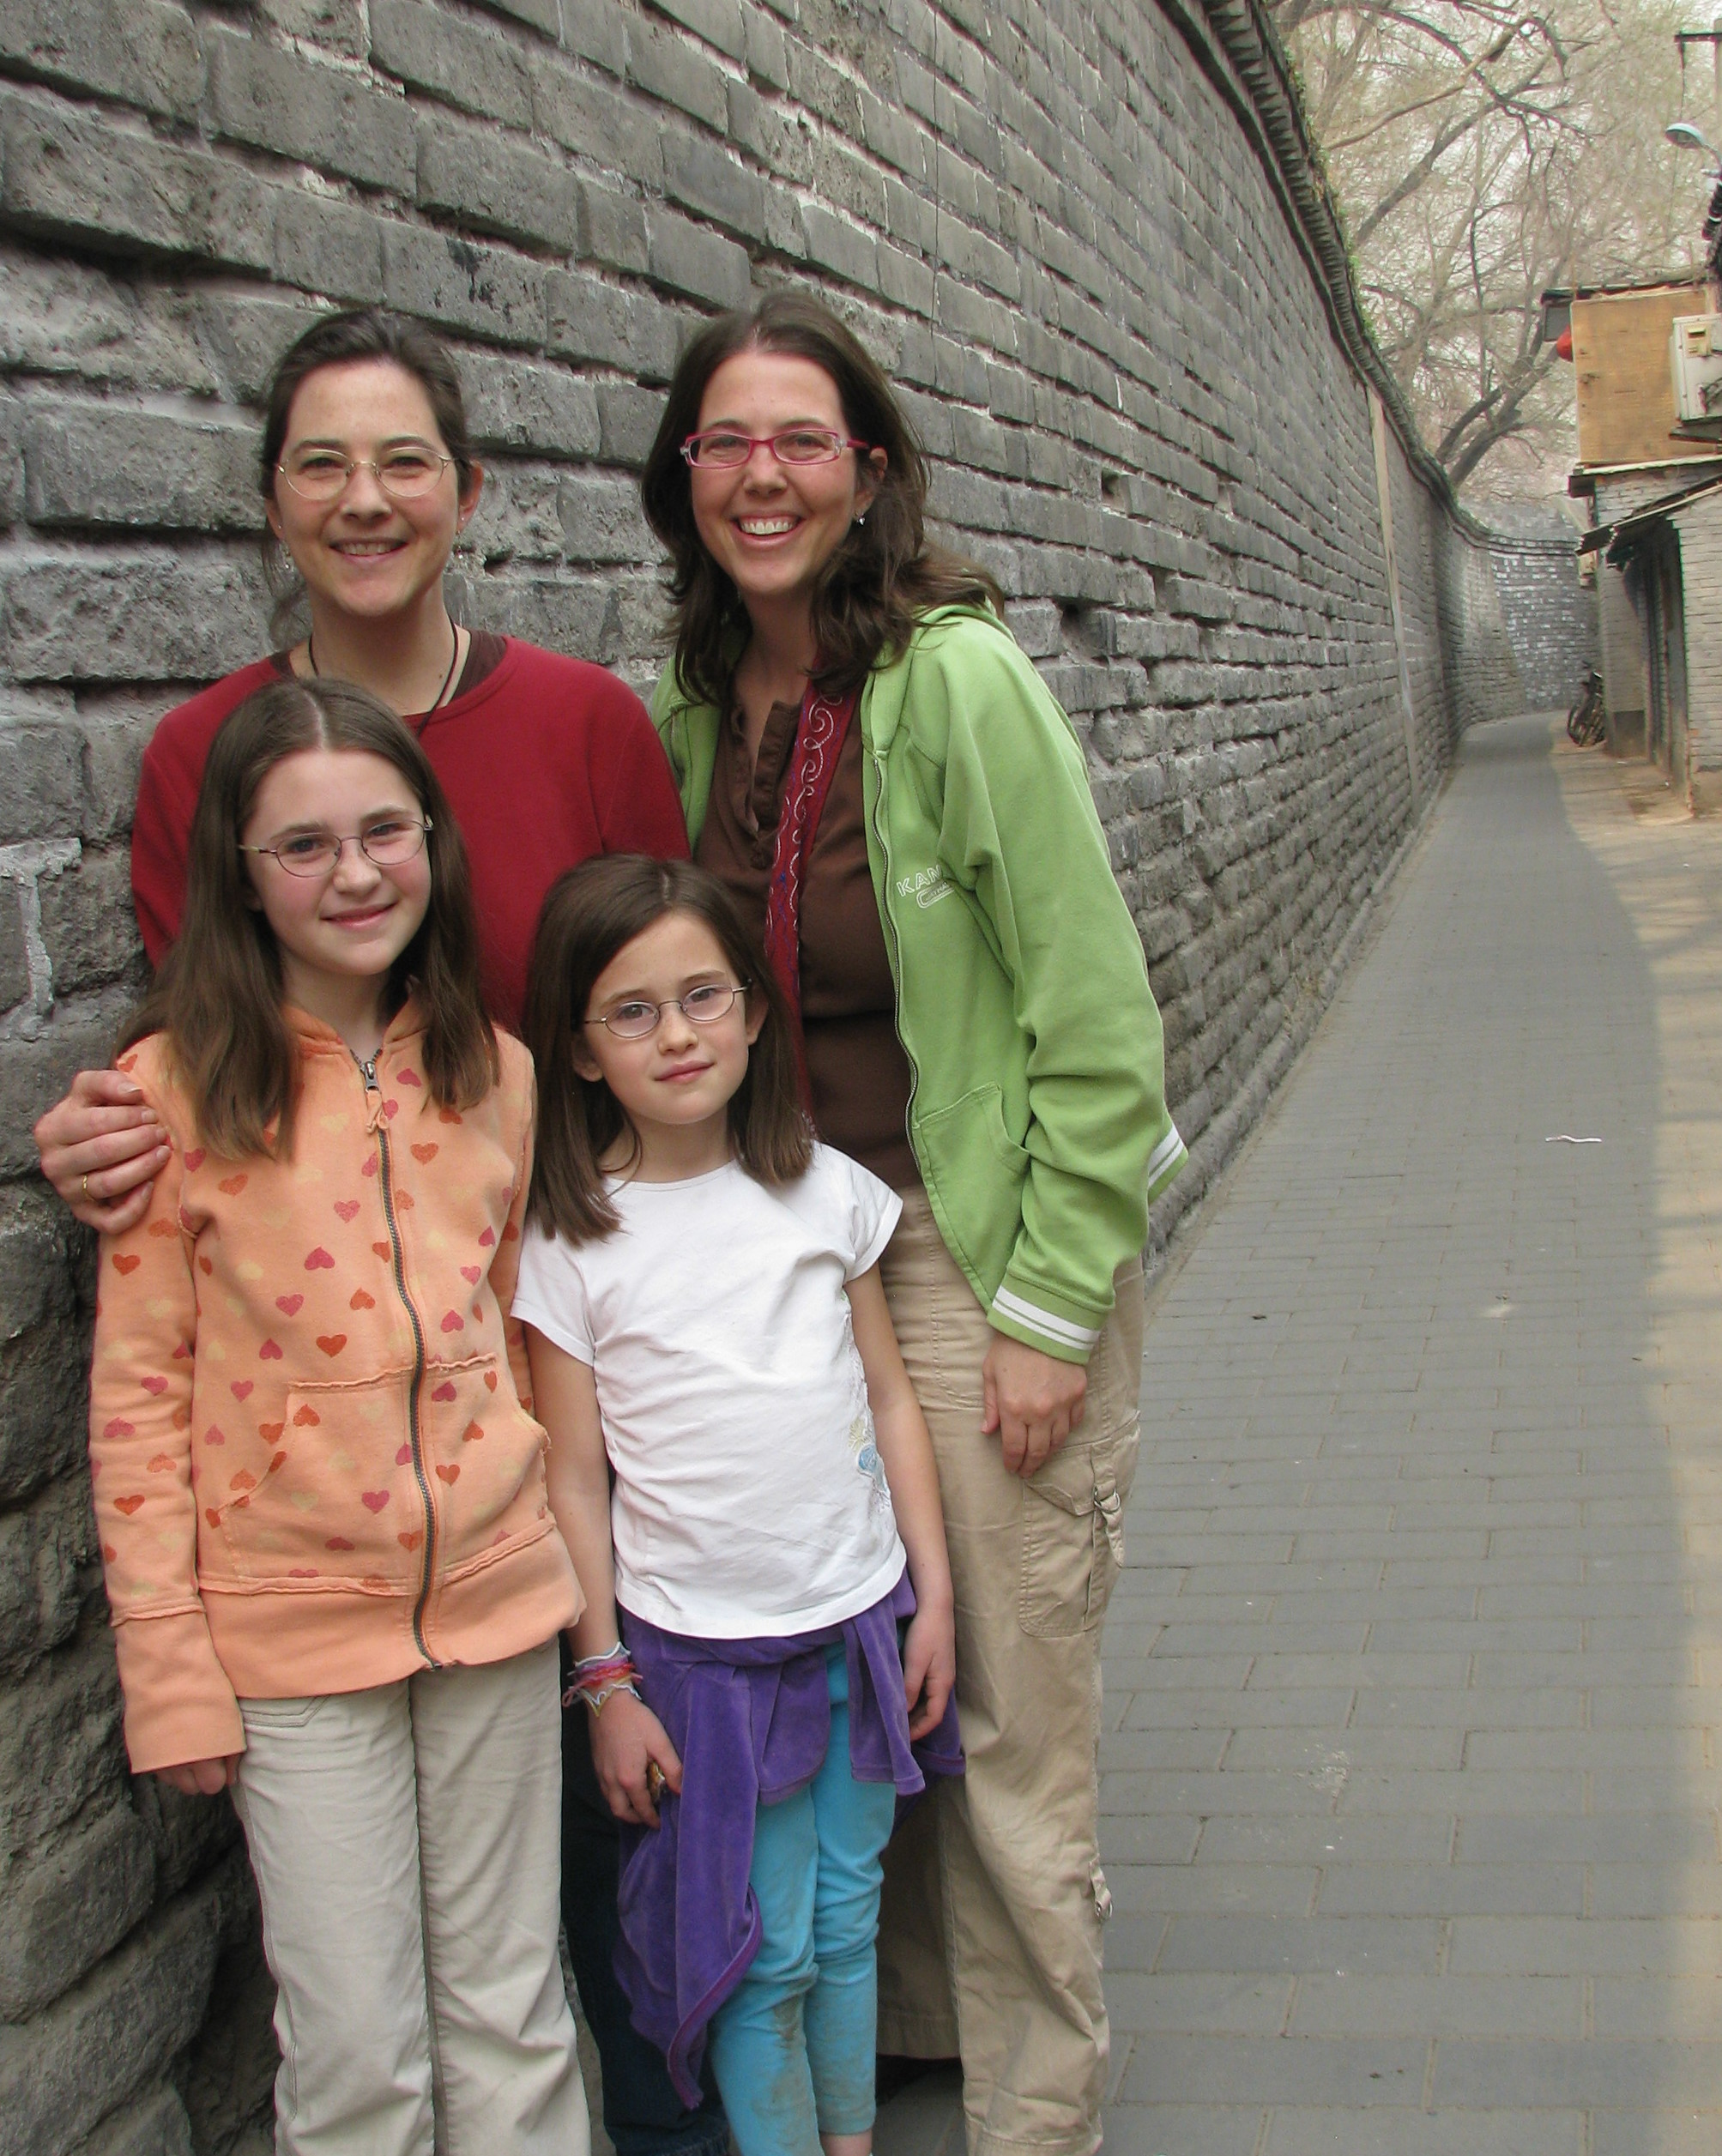 One of my great joys was that most of my family got to visit me in China. My sister and nieces and I are in one of the old lanes of Beijing.